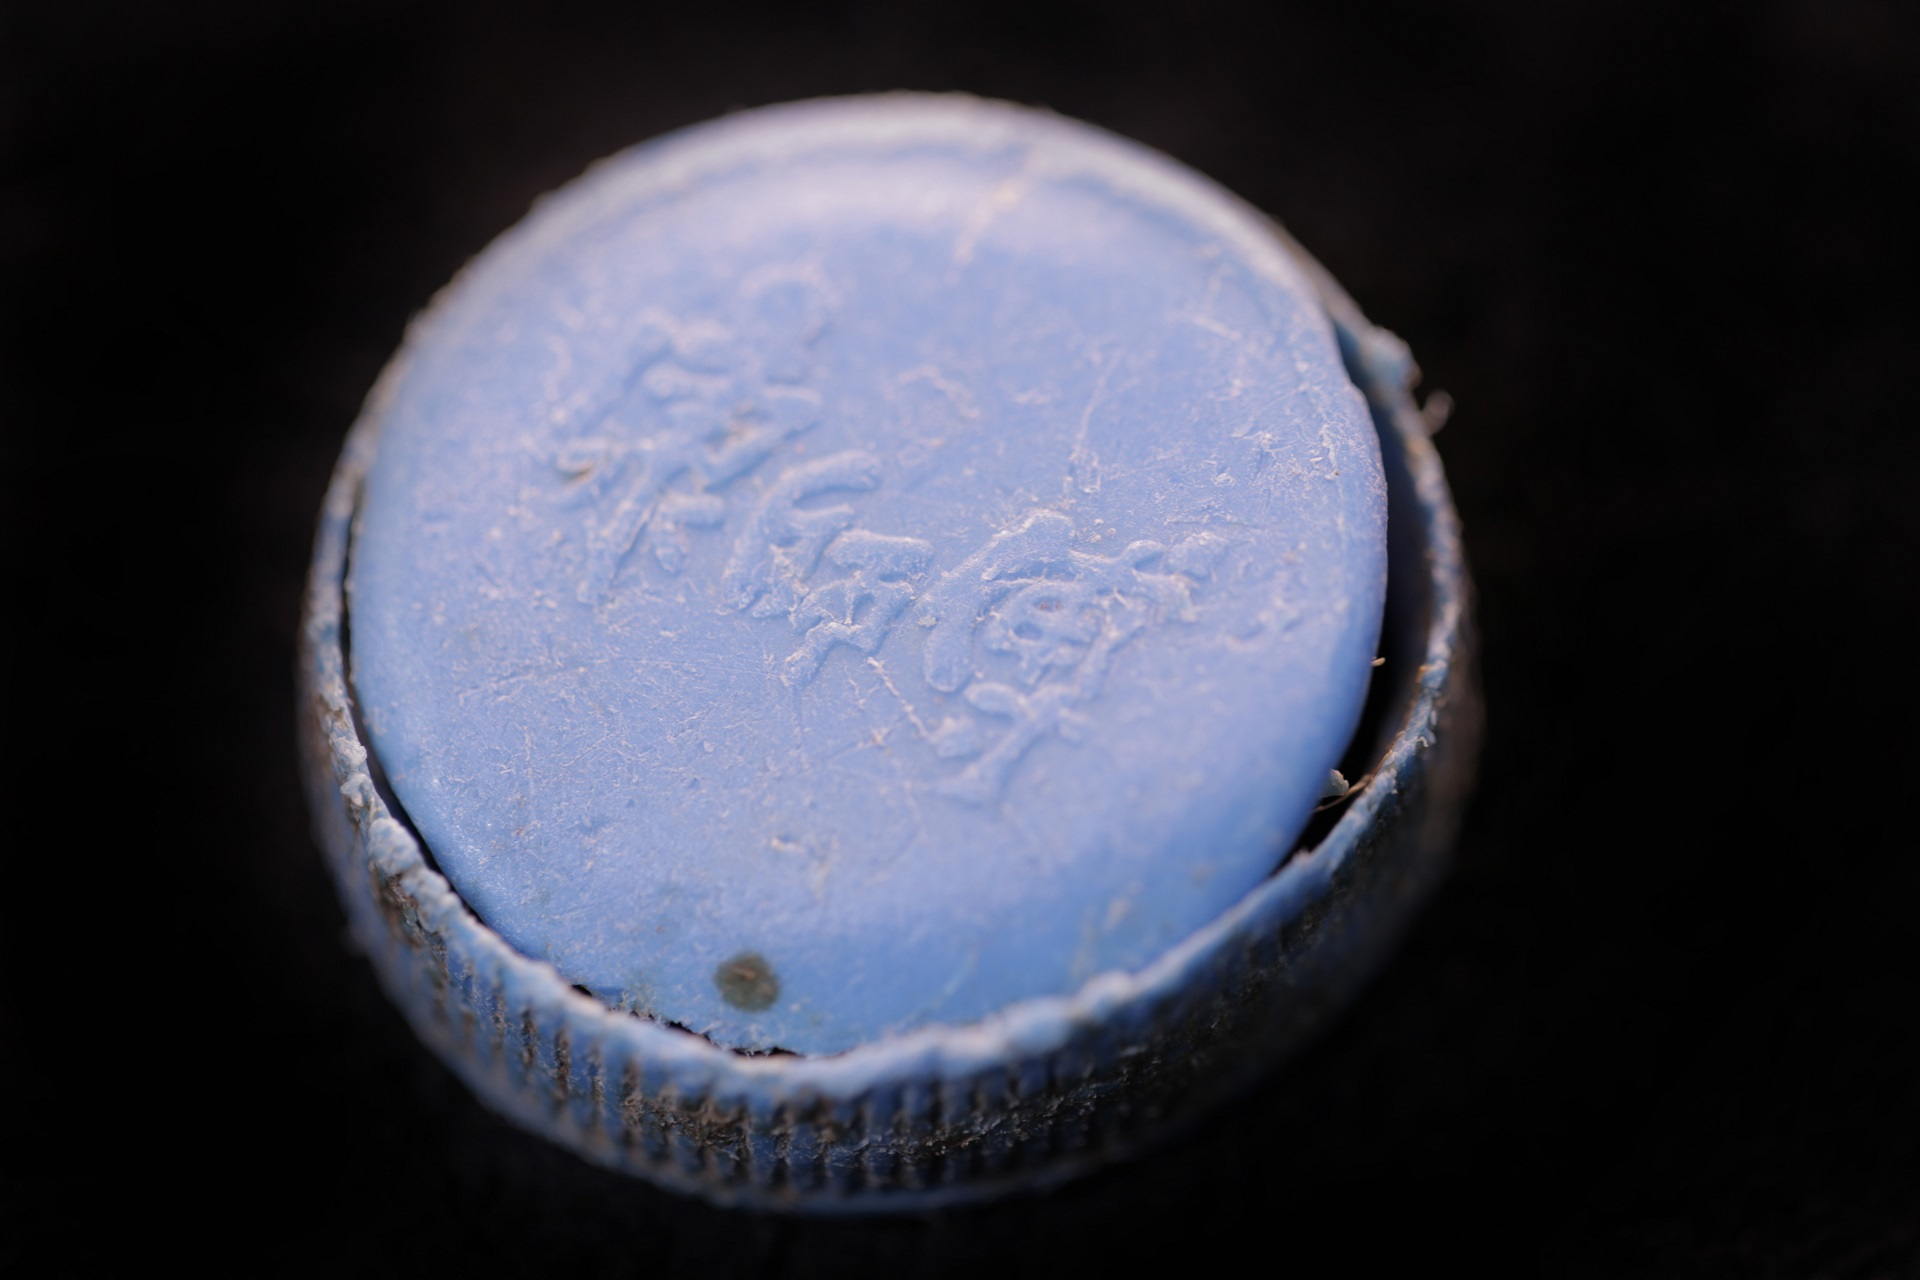 This bottle cap is from Kang Shi Fu, a Taiwanese company, which sells beverages and snacks. (Amy Cruz/Peninsula Press)